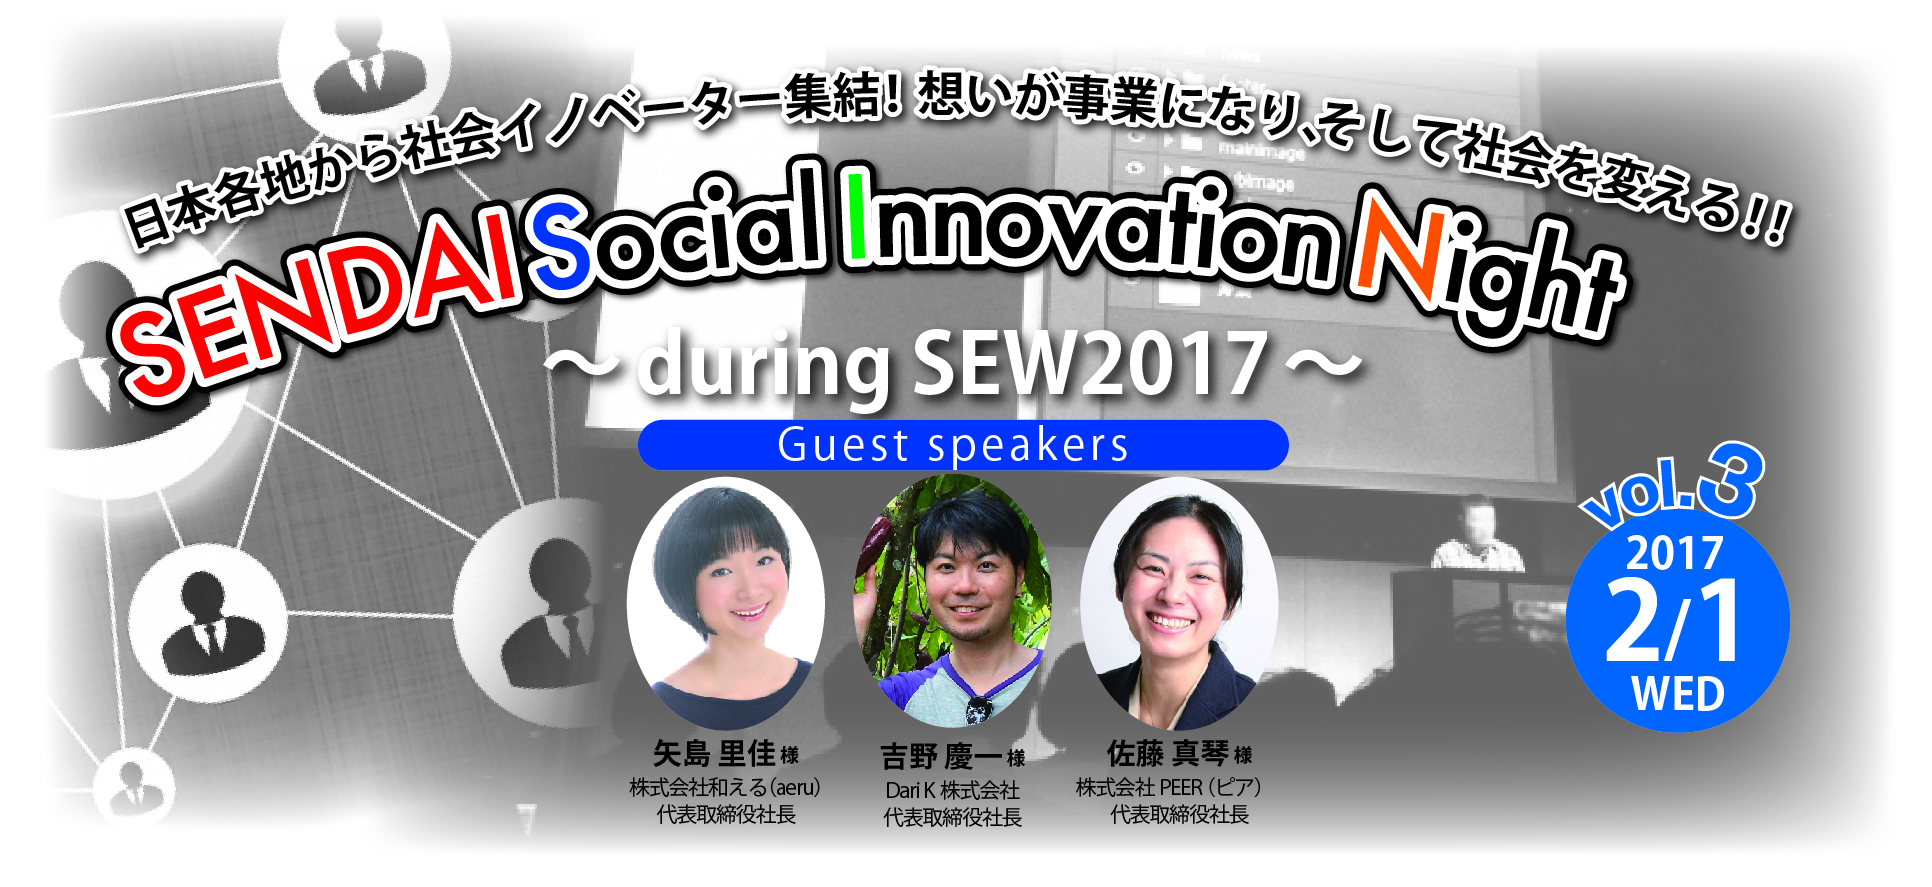 SENDAI Social Innovation Night Vol.3 during SEW2017